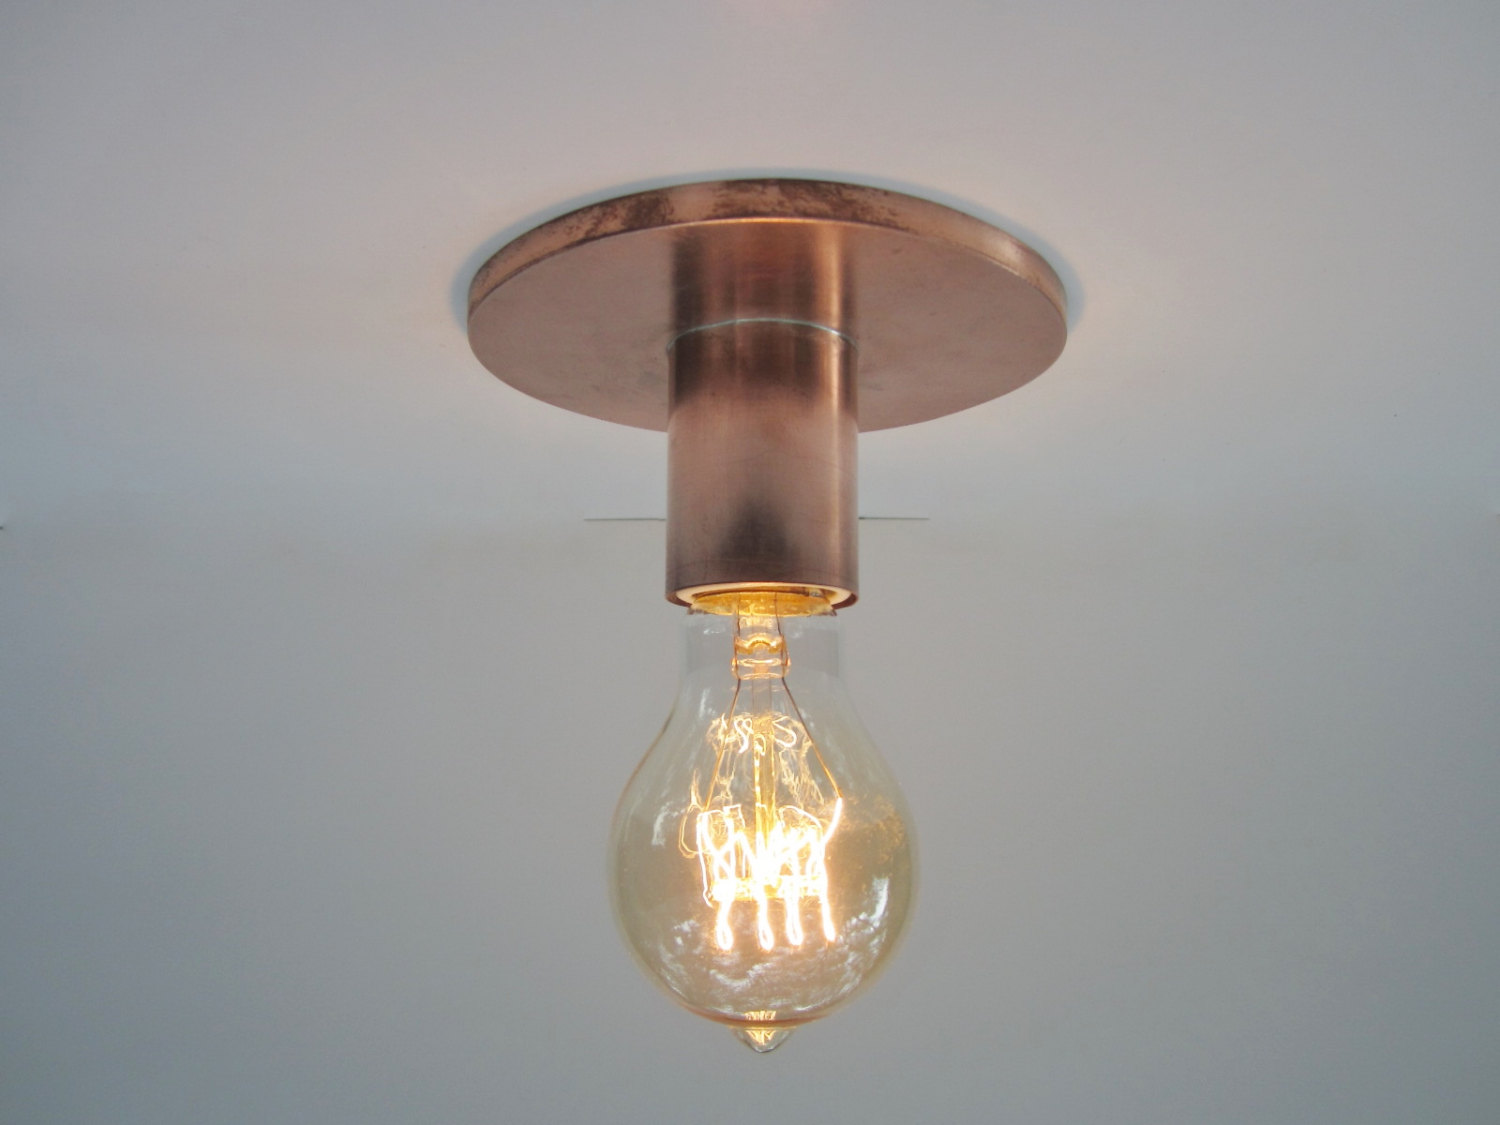 10 Adventiges Of Ceiling Light Bulb